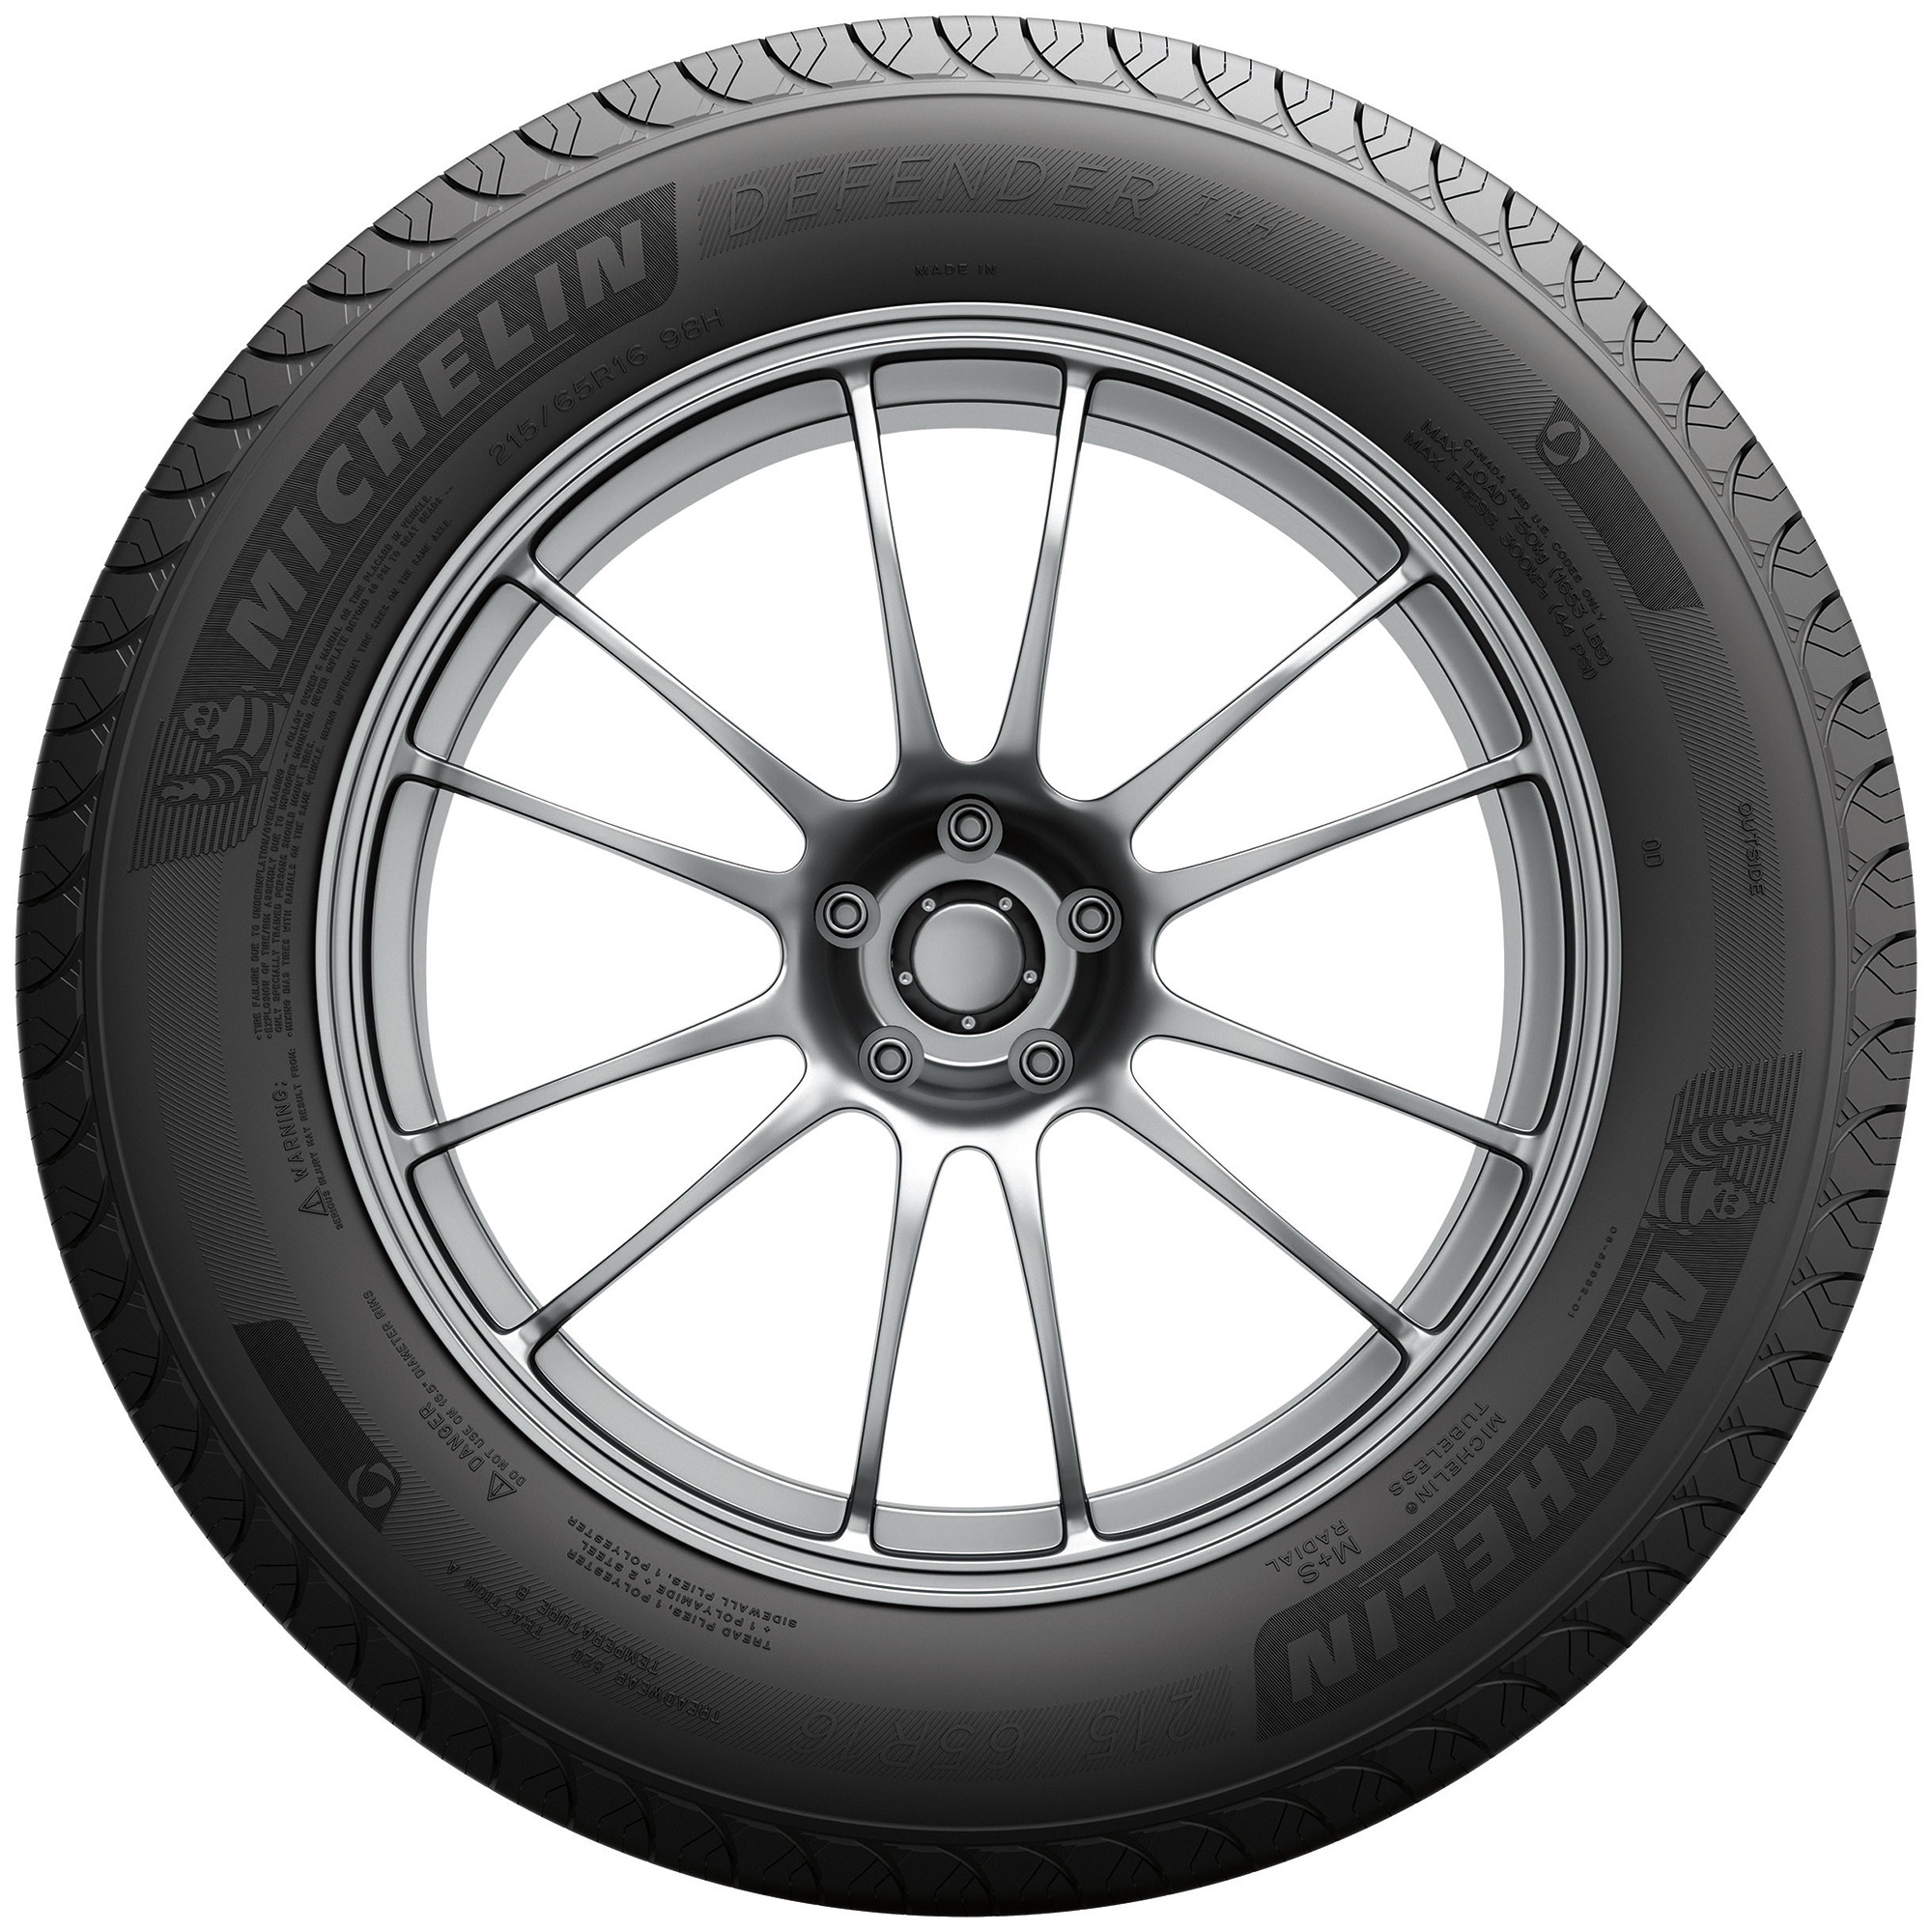 Michelin Defender T H Highway Tire 21560r16 95h